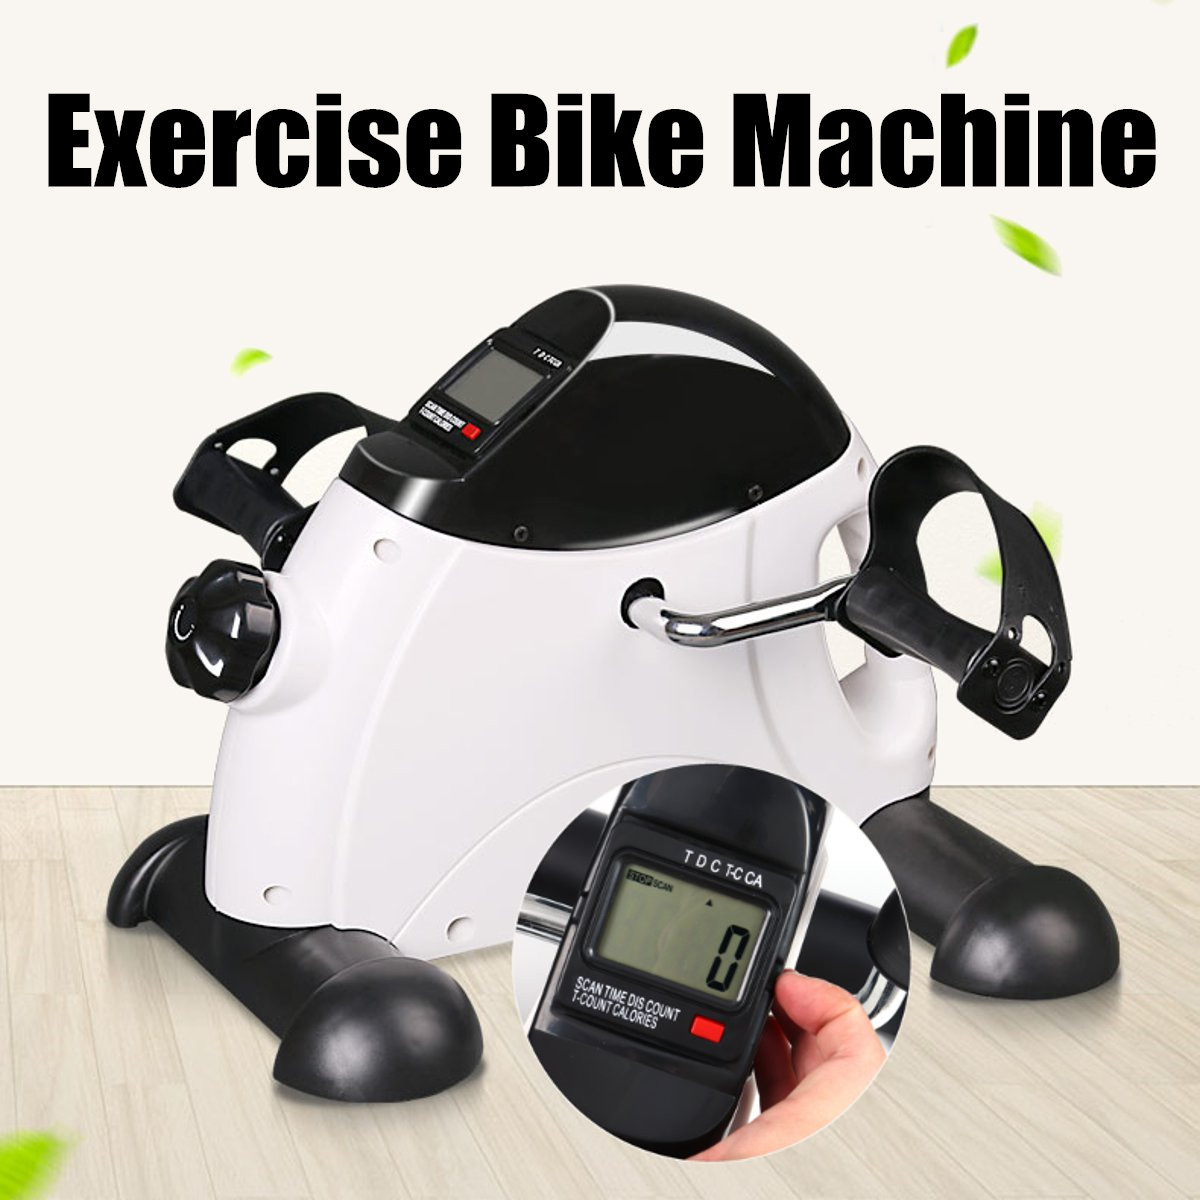 Home Exerciser Fitness LED Display Pedal Bike Exercise Indoor Trainer Exerciser Cycling Fitness Mini Pedal Arms Legs Physical